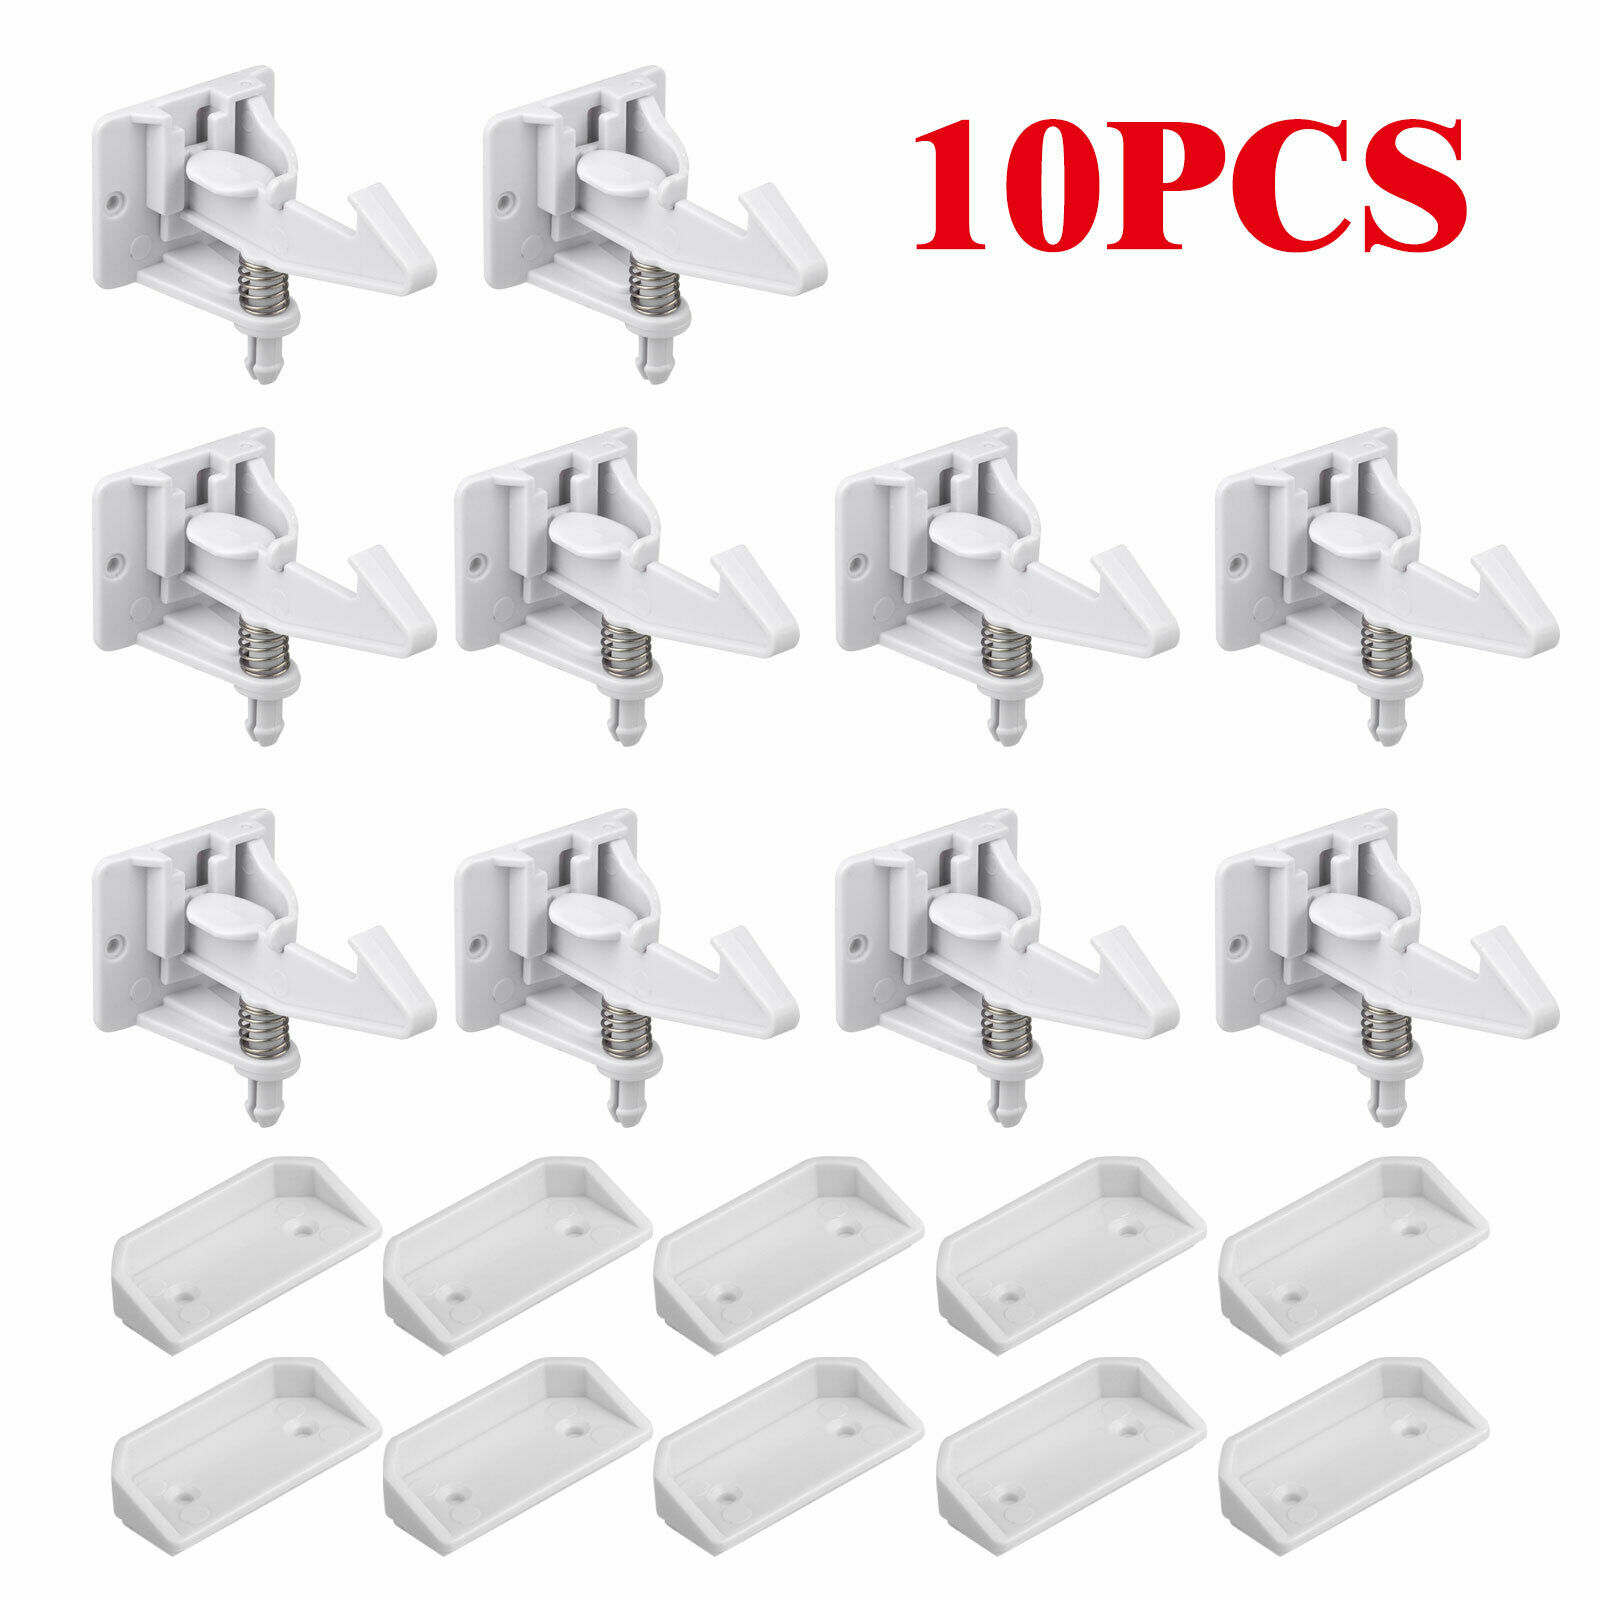 10pcs Cabinet Locks Lock Child Safety Latches Quick Easy Adhesive Baby Proofing 10